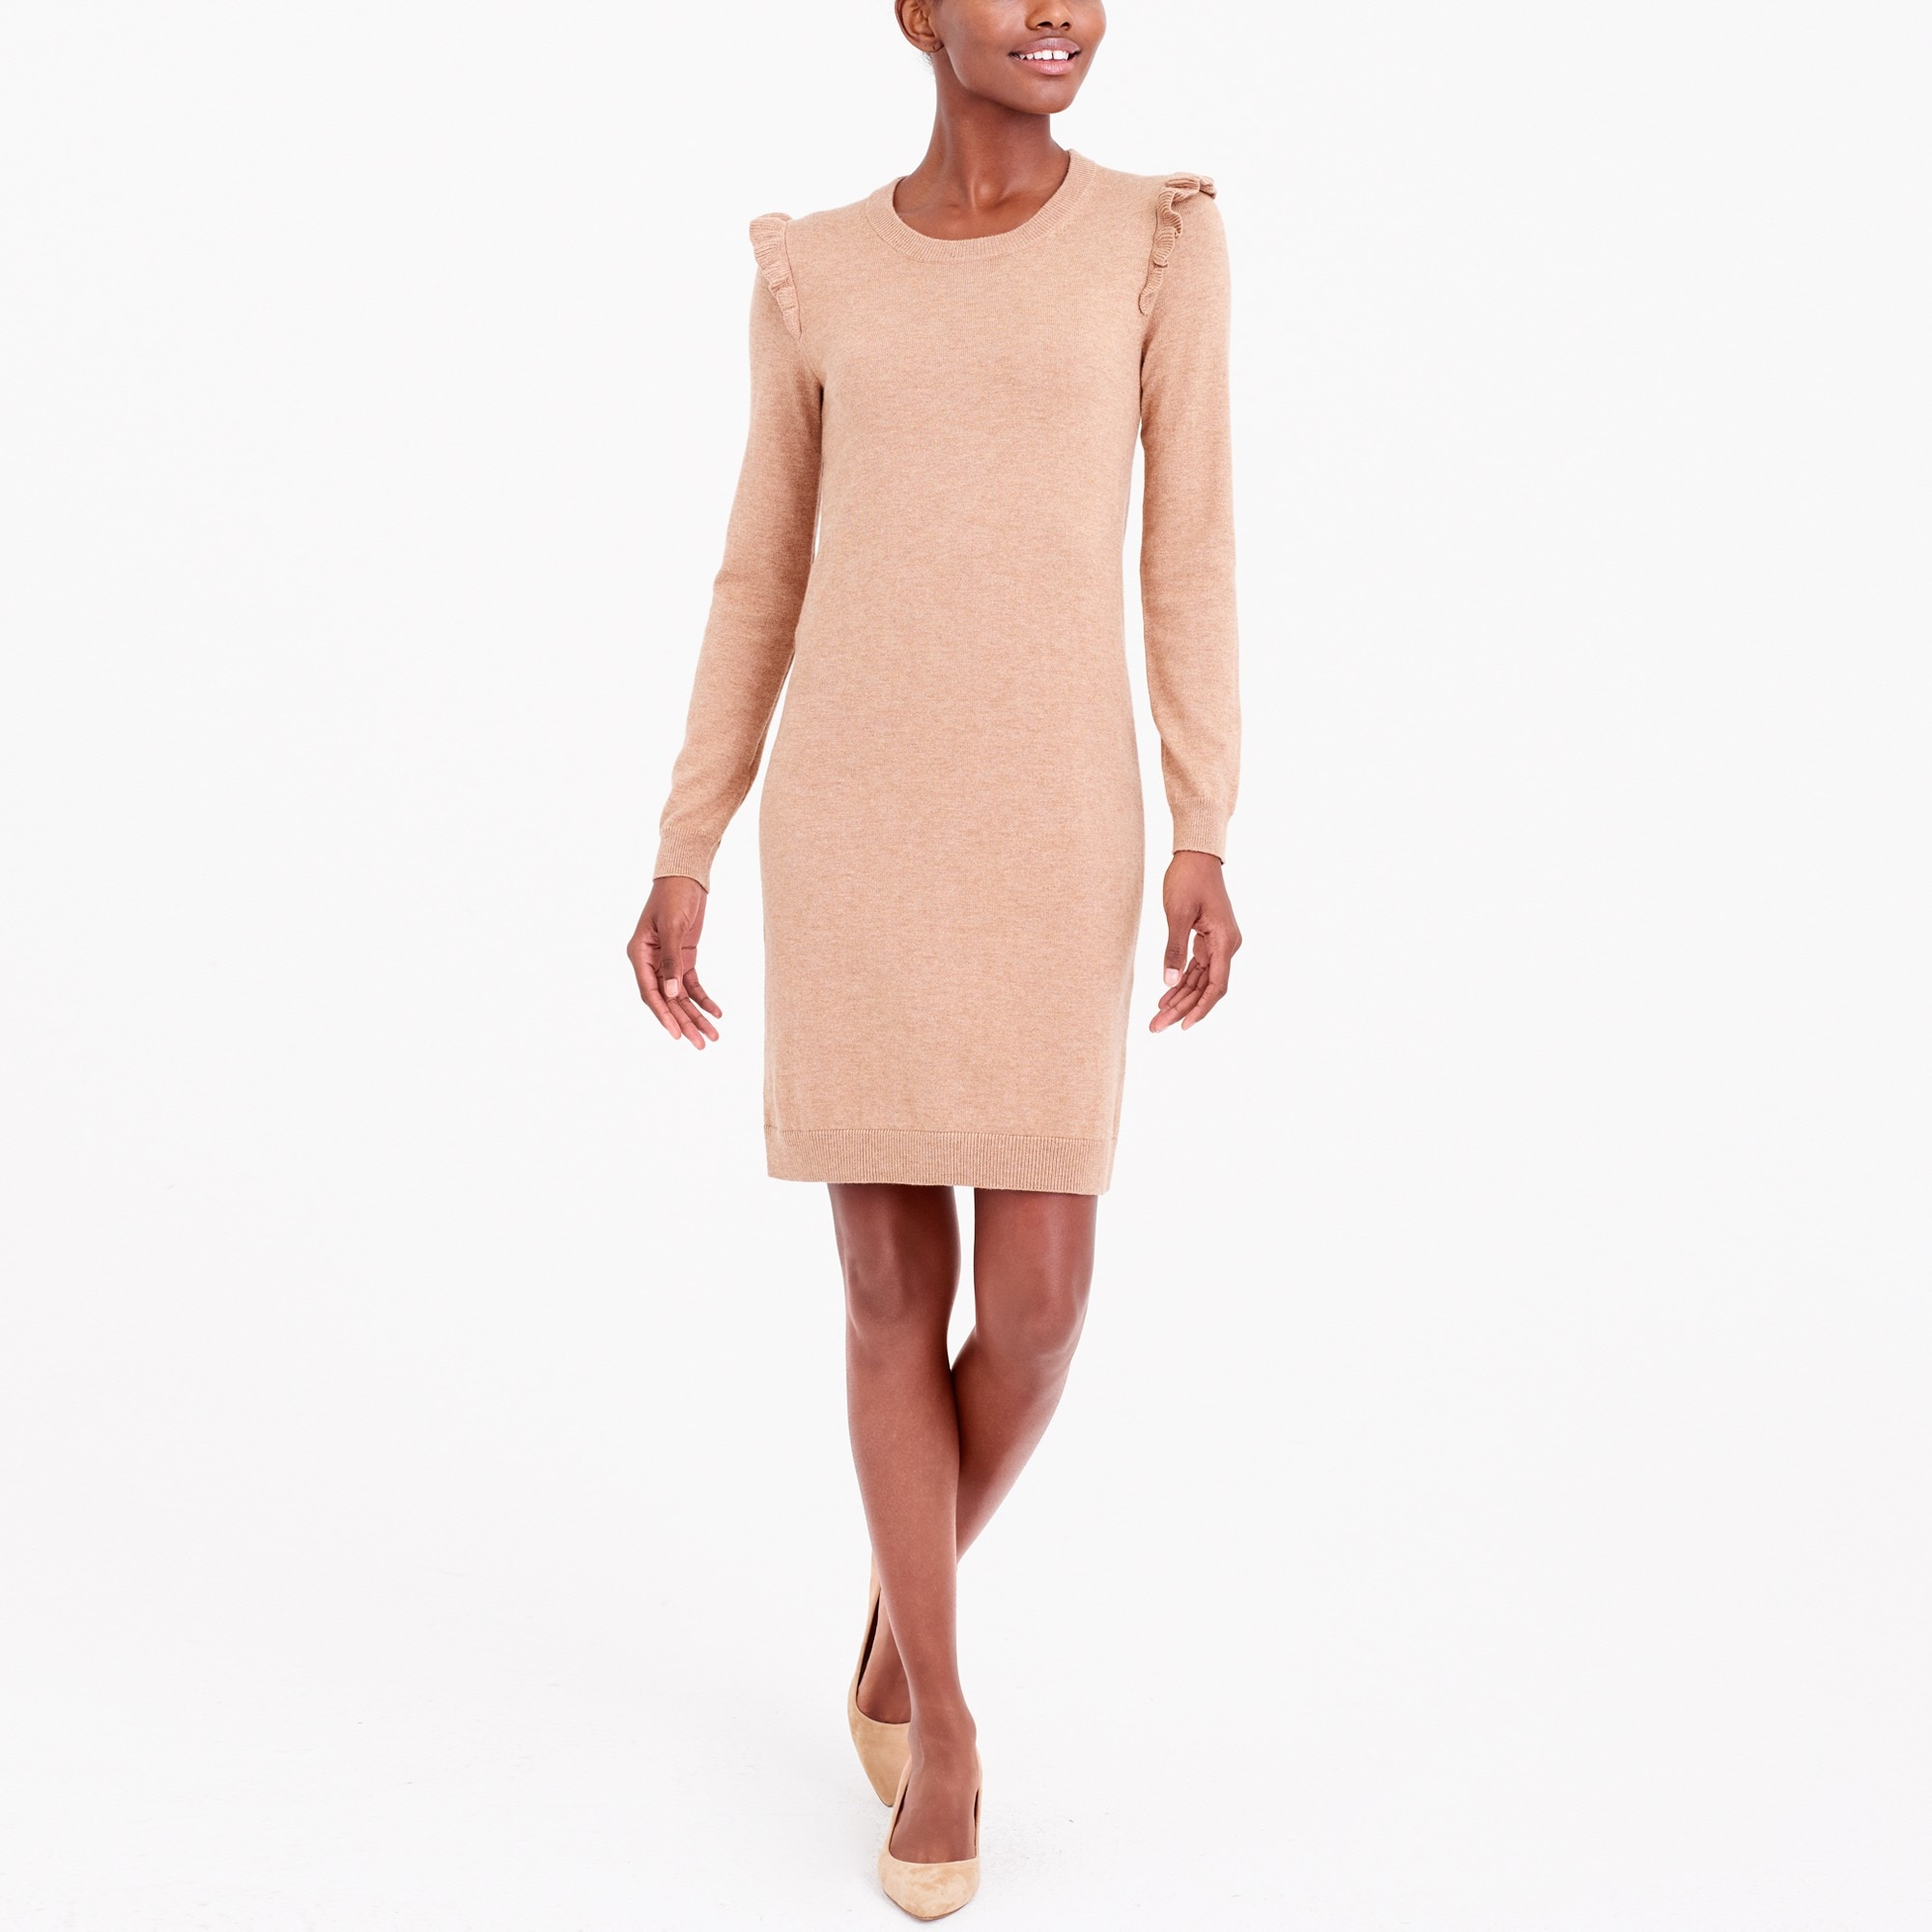 Image 1 for Ruffle-hem sweater dress